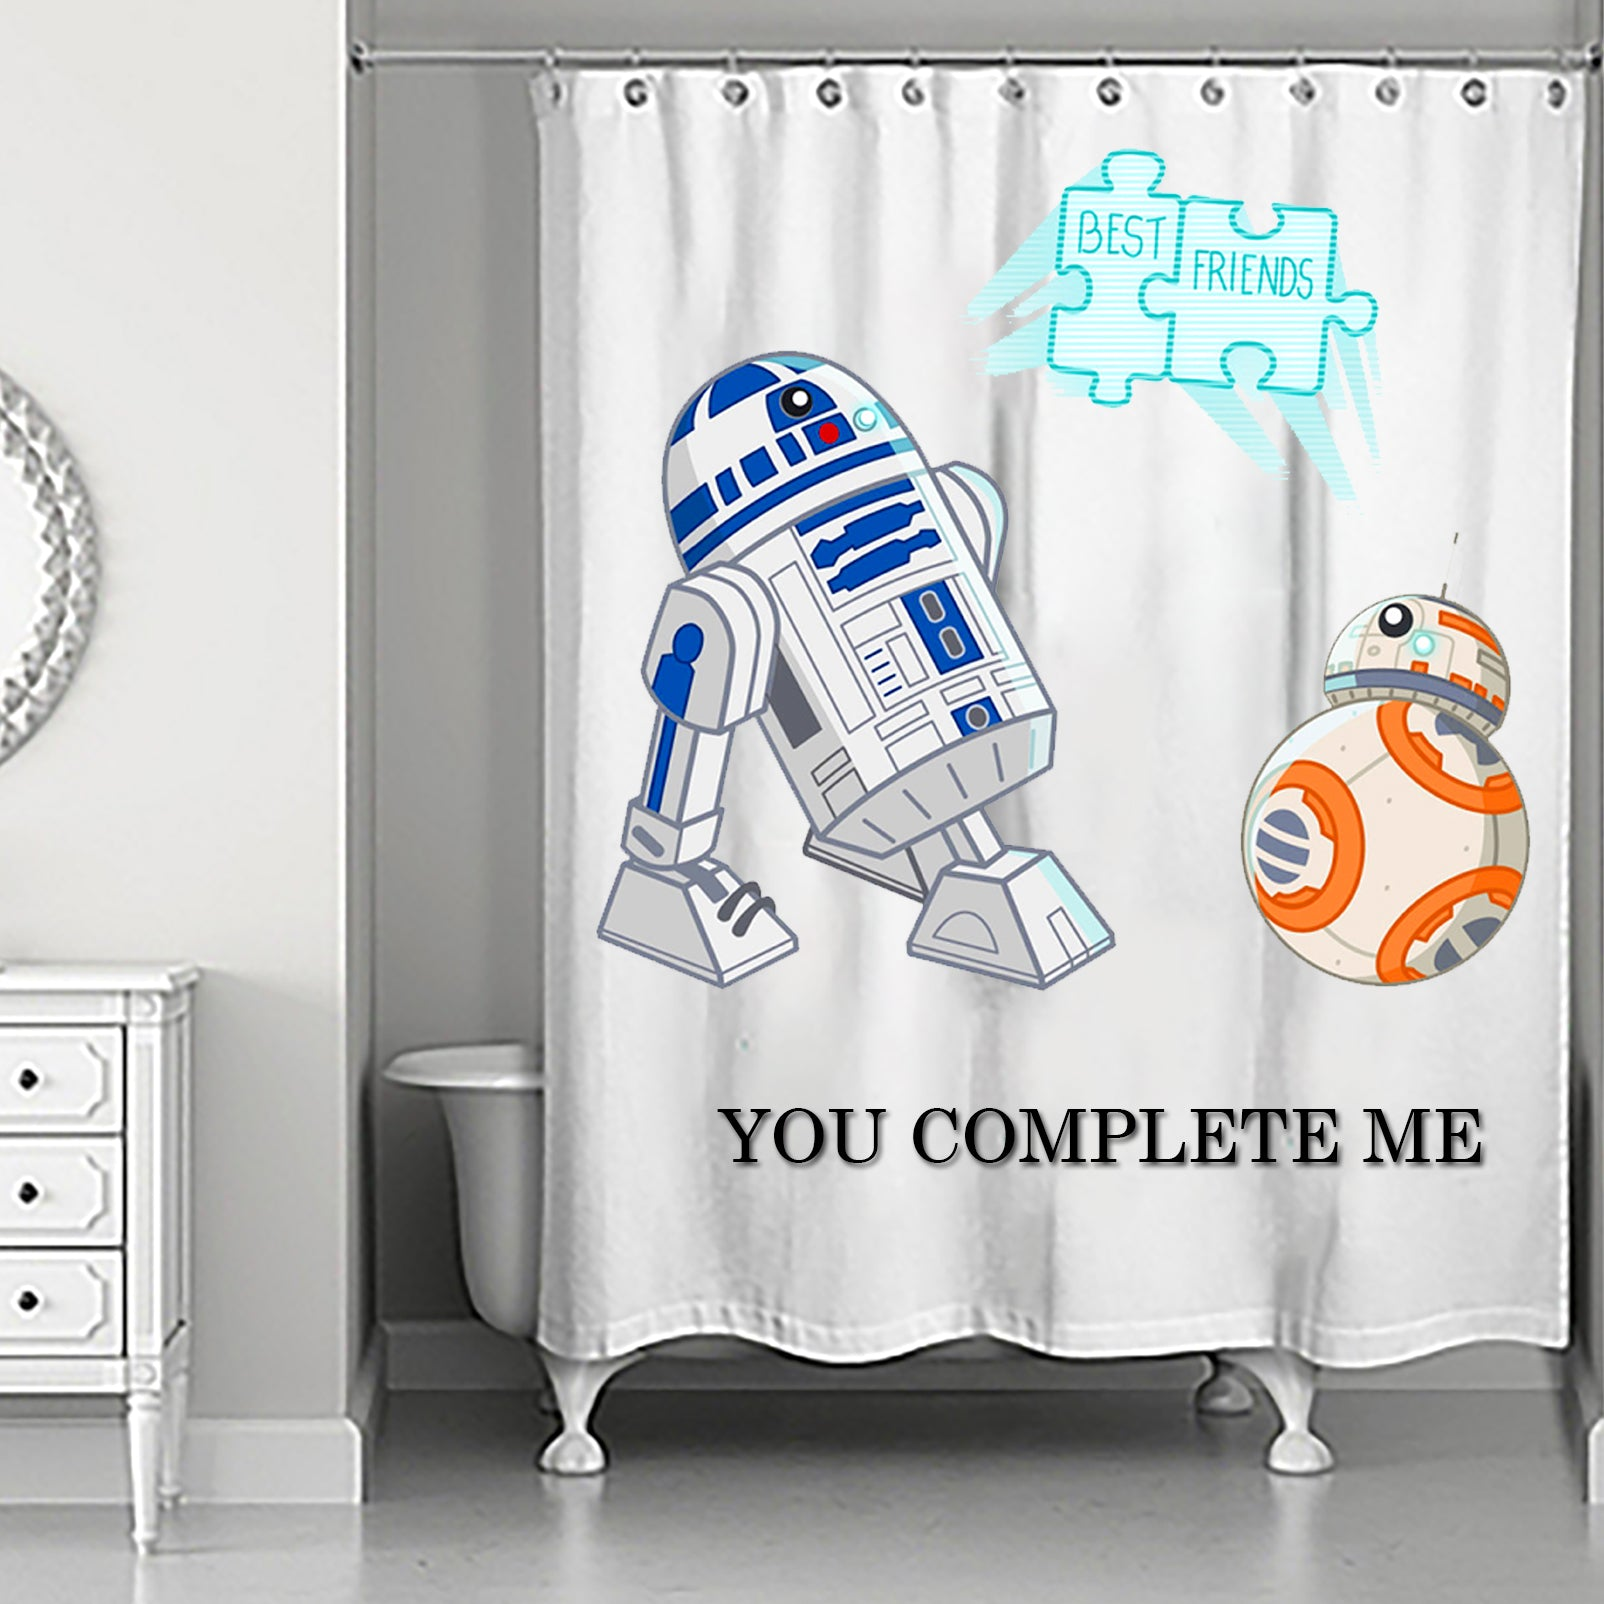 Starwars Shower Curtain R2d2 Meet Bb8 High Quality Waterproof Polyester Fabric Bathroom Curtains